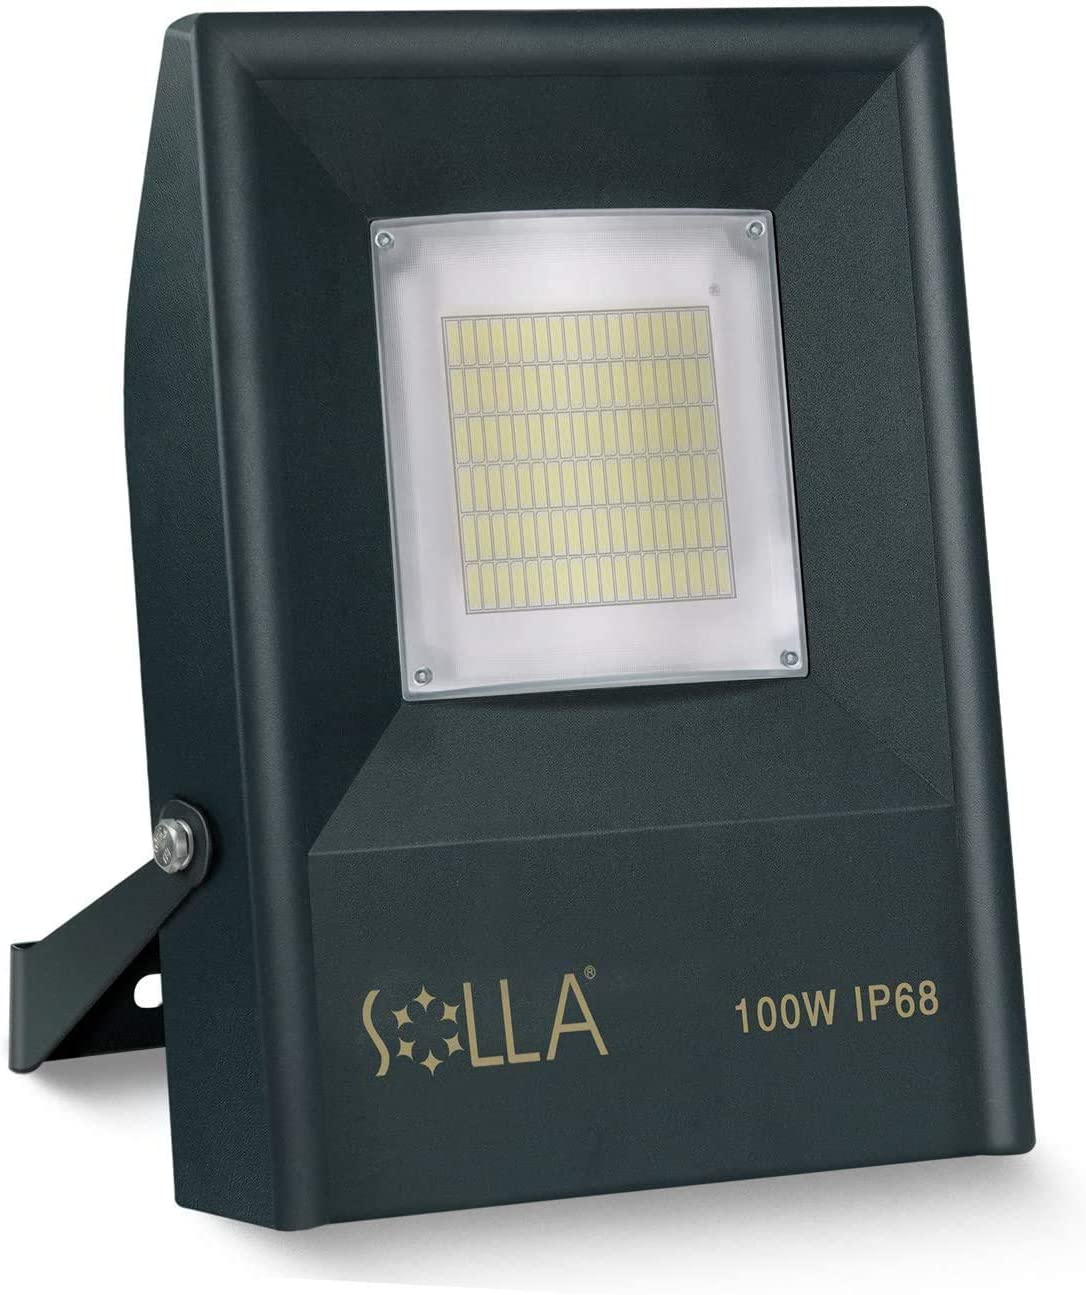 Solla  8000LM 100W LED Waterproof Flood Light $9.99 Coupon